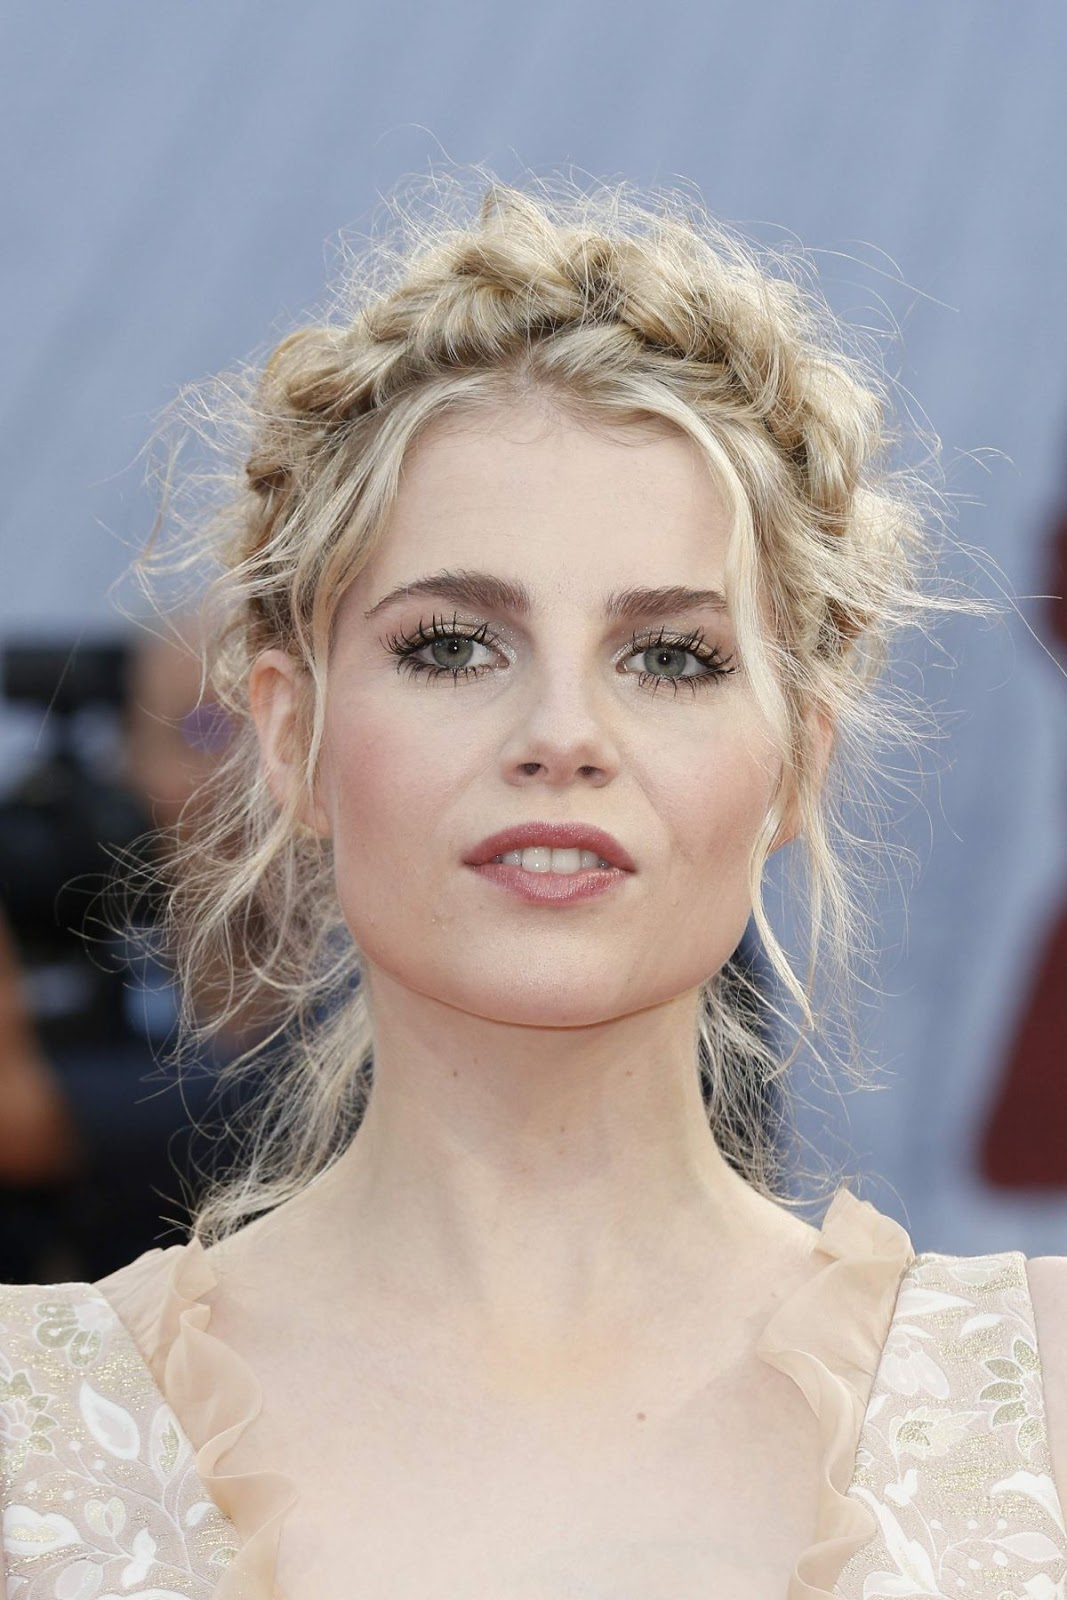 HQ Photos of Lucy Boynton at Indubious Battle Premiere at 42th Deauville American Film Festival